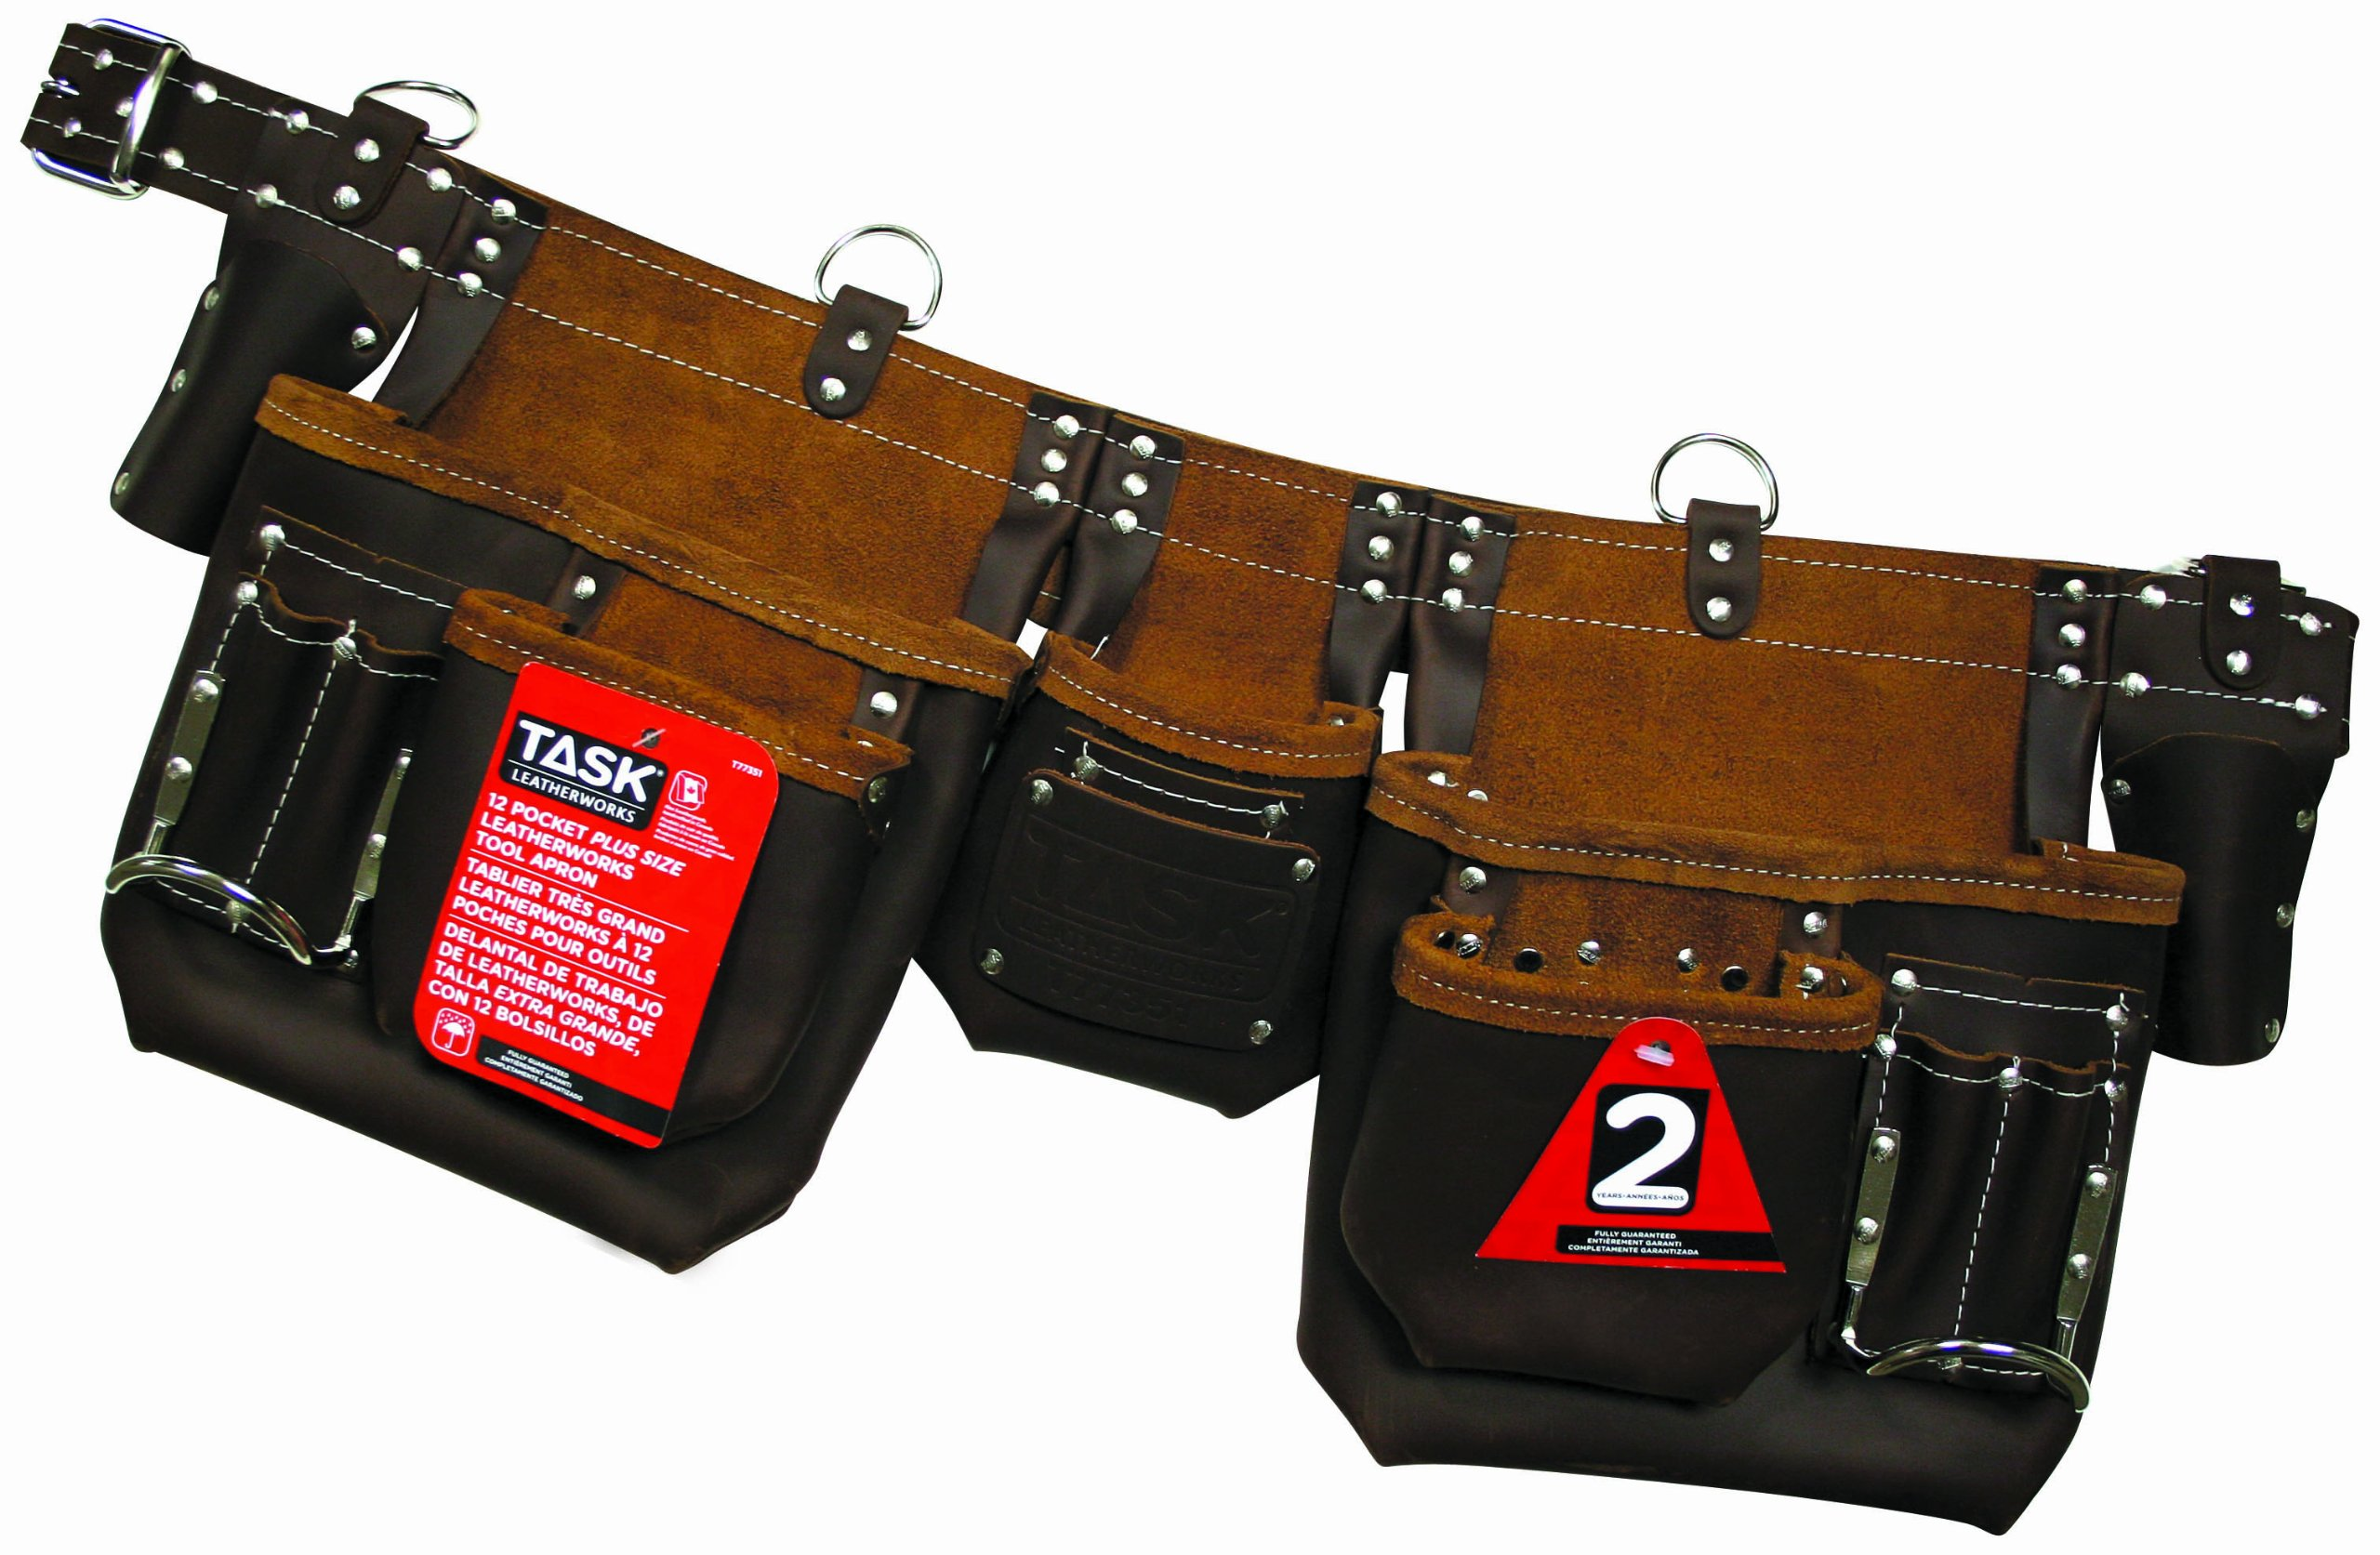 Task Tools T77351 Master Carpenter's Apron with 2 Oversized-Pocket, 12-Pocket